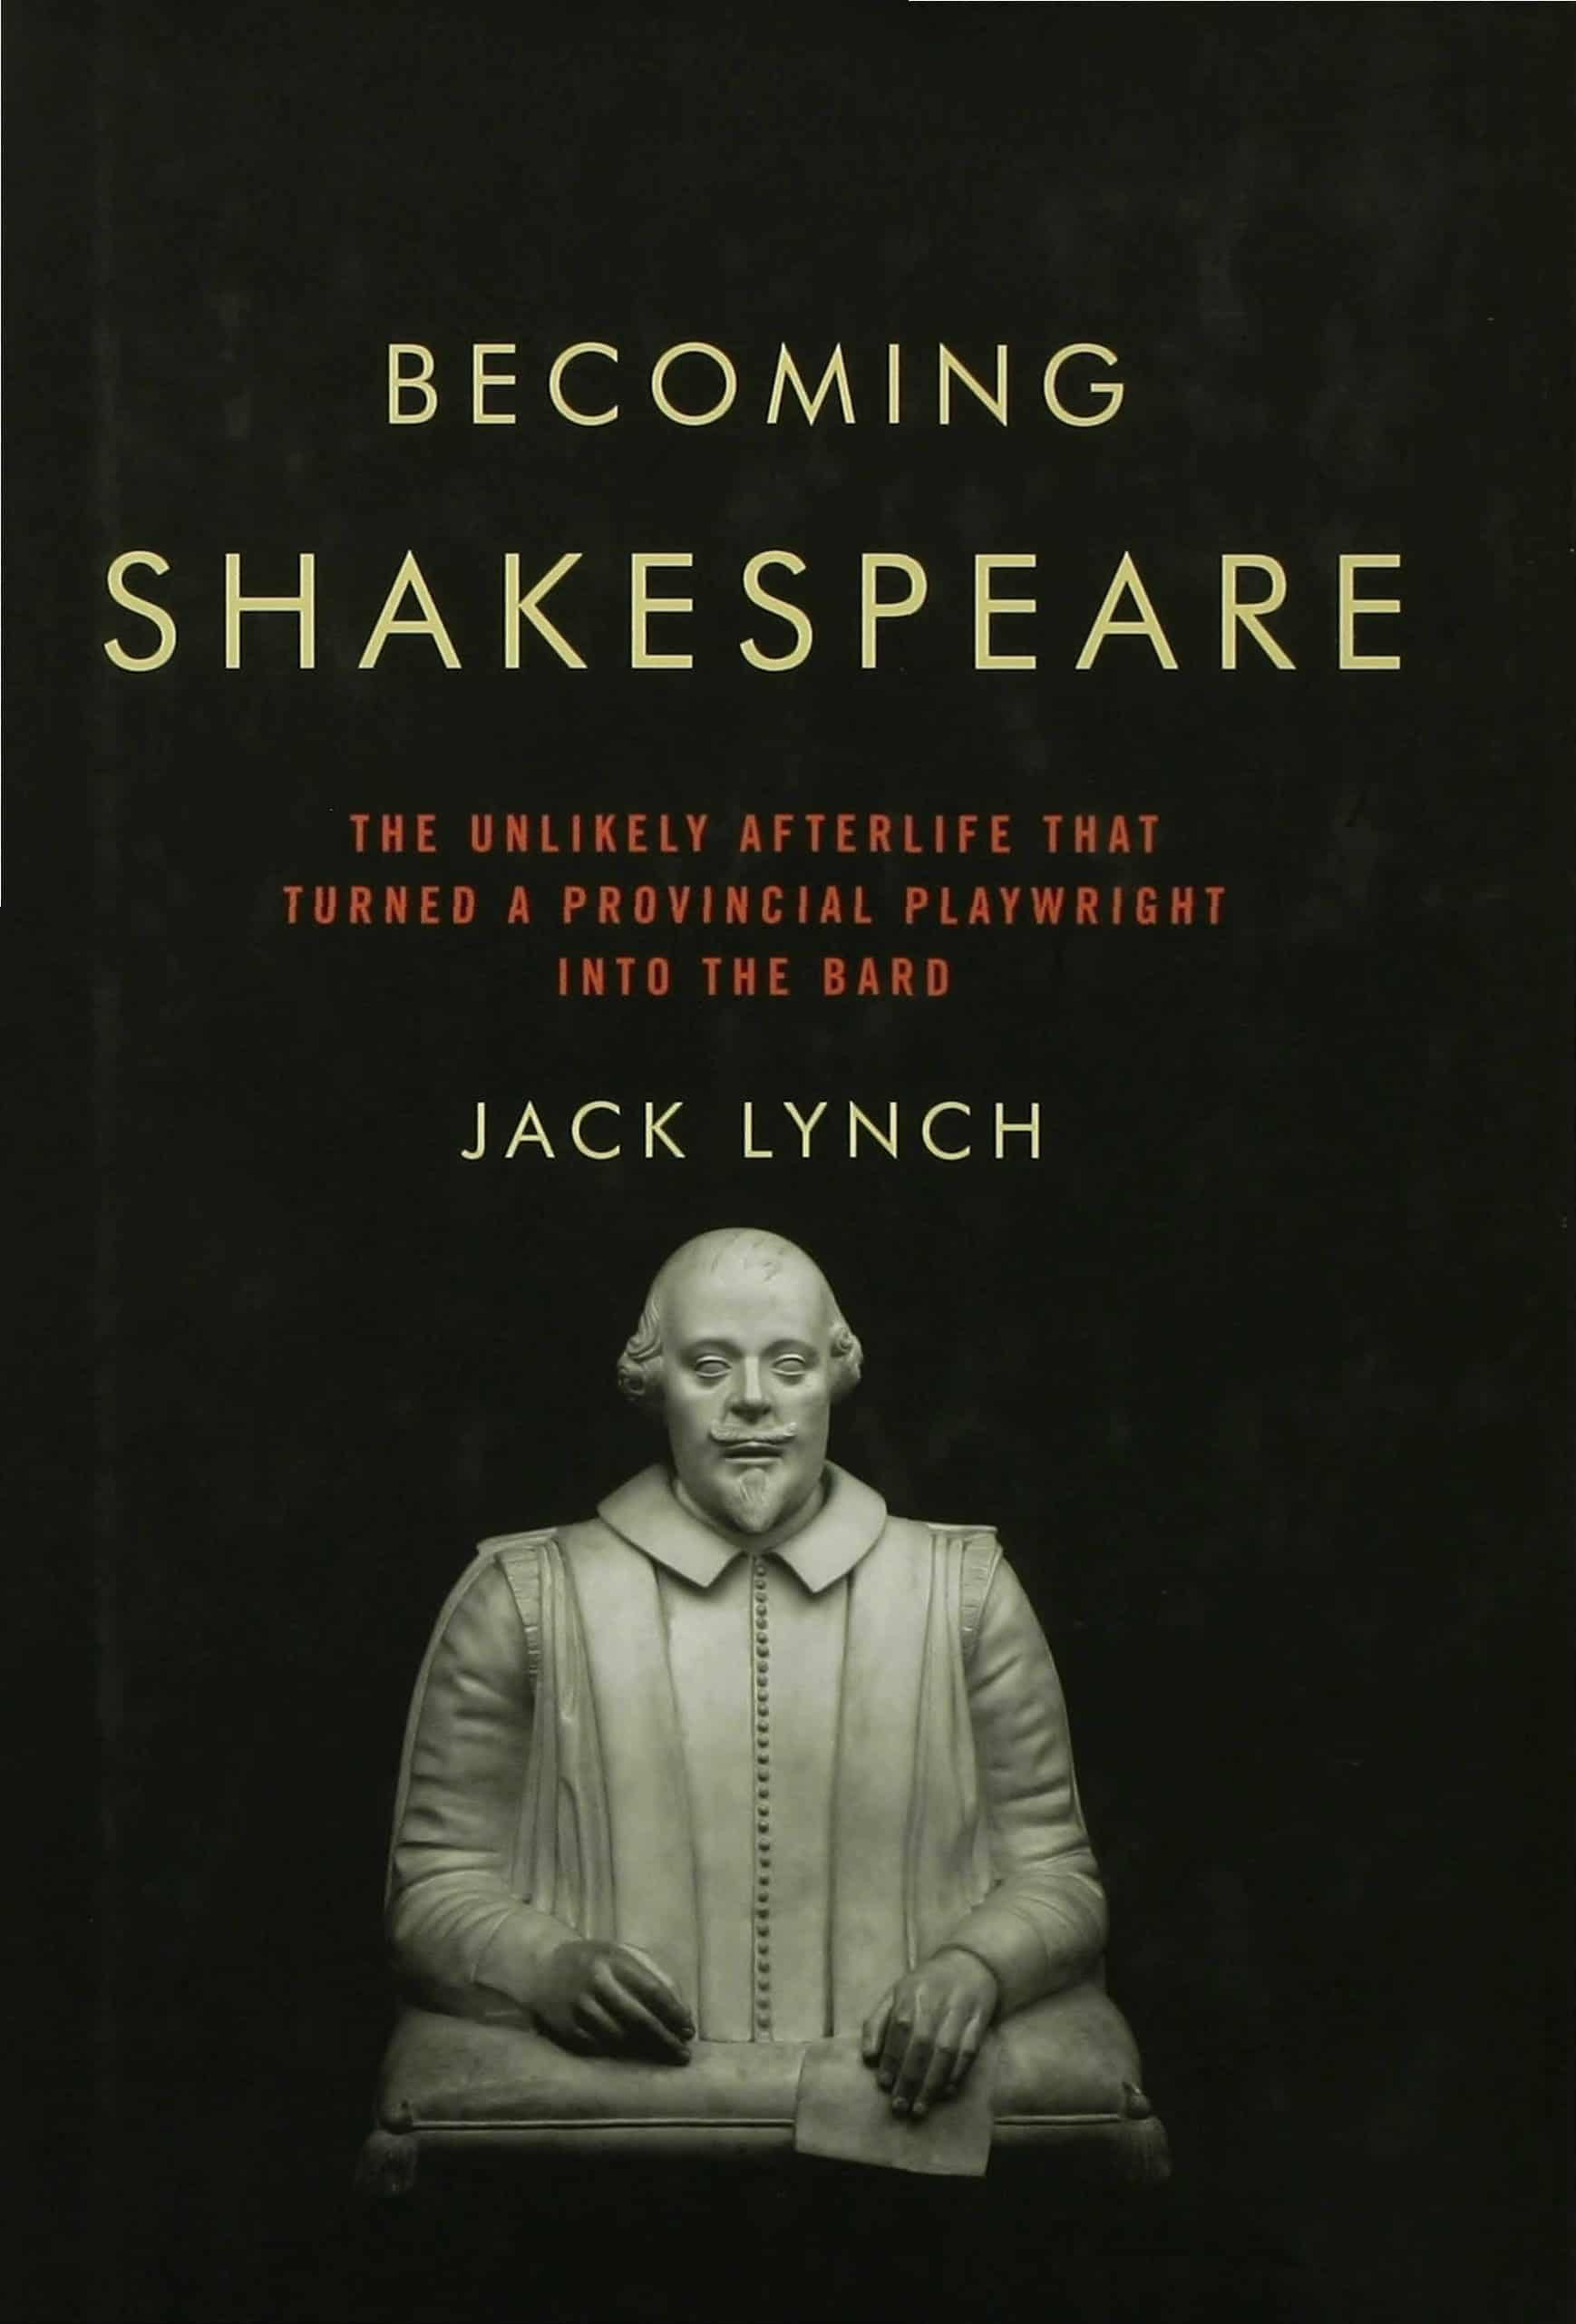 Becoming Shakespeare The Unlikely Afterlife That Turned a Provincial Playwright into the Bard - Becoming Shakespeare: The Unlikely Afterlife That Turned a Provincial Playwright into the Bard